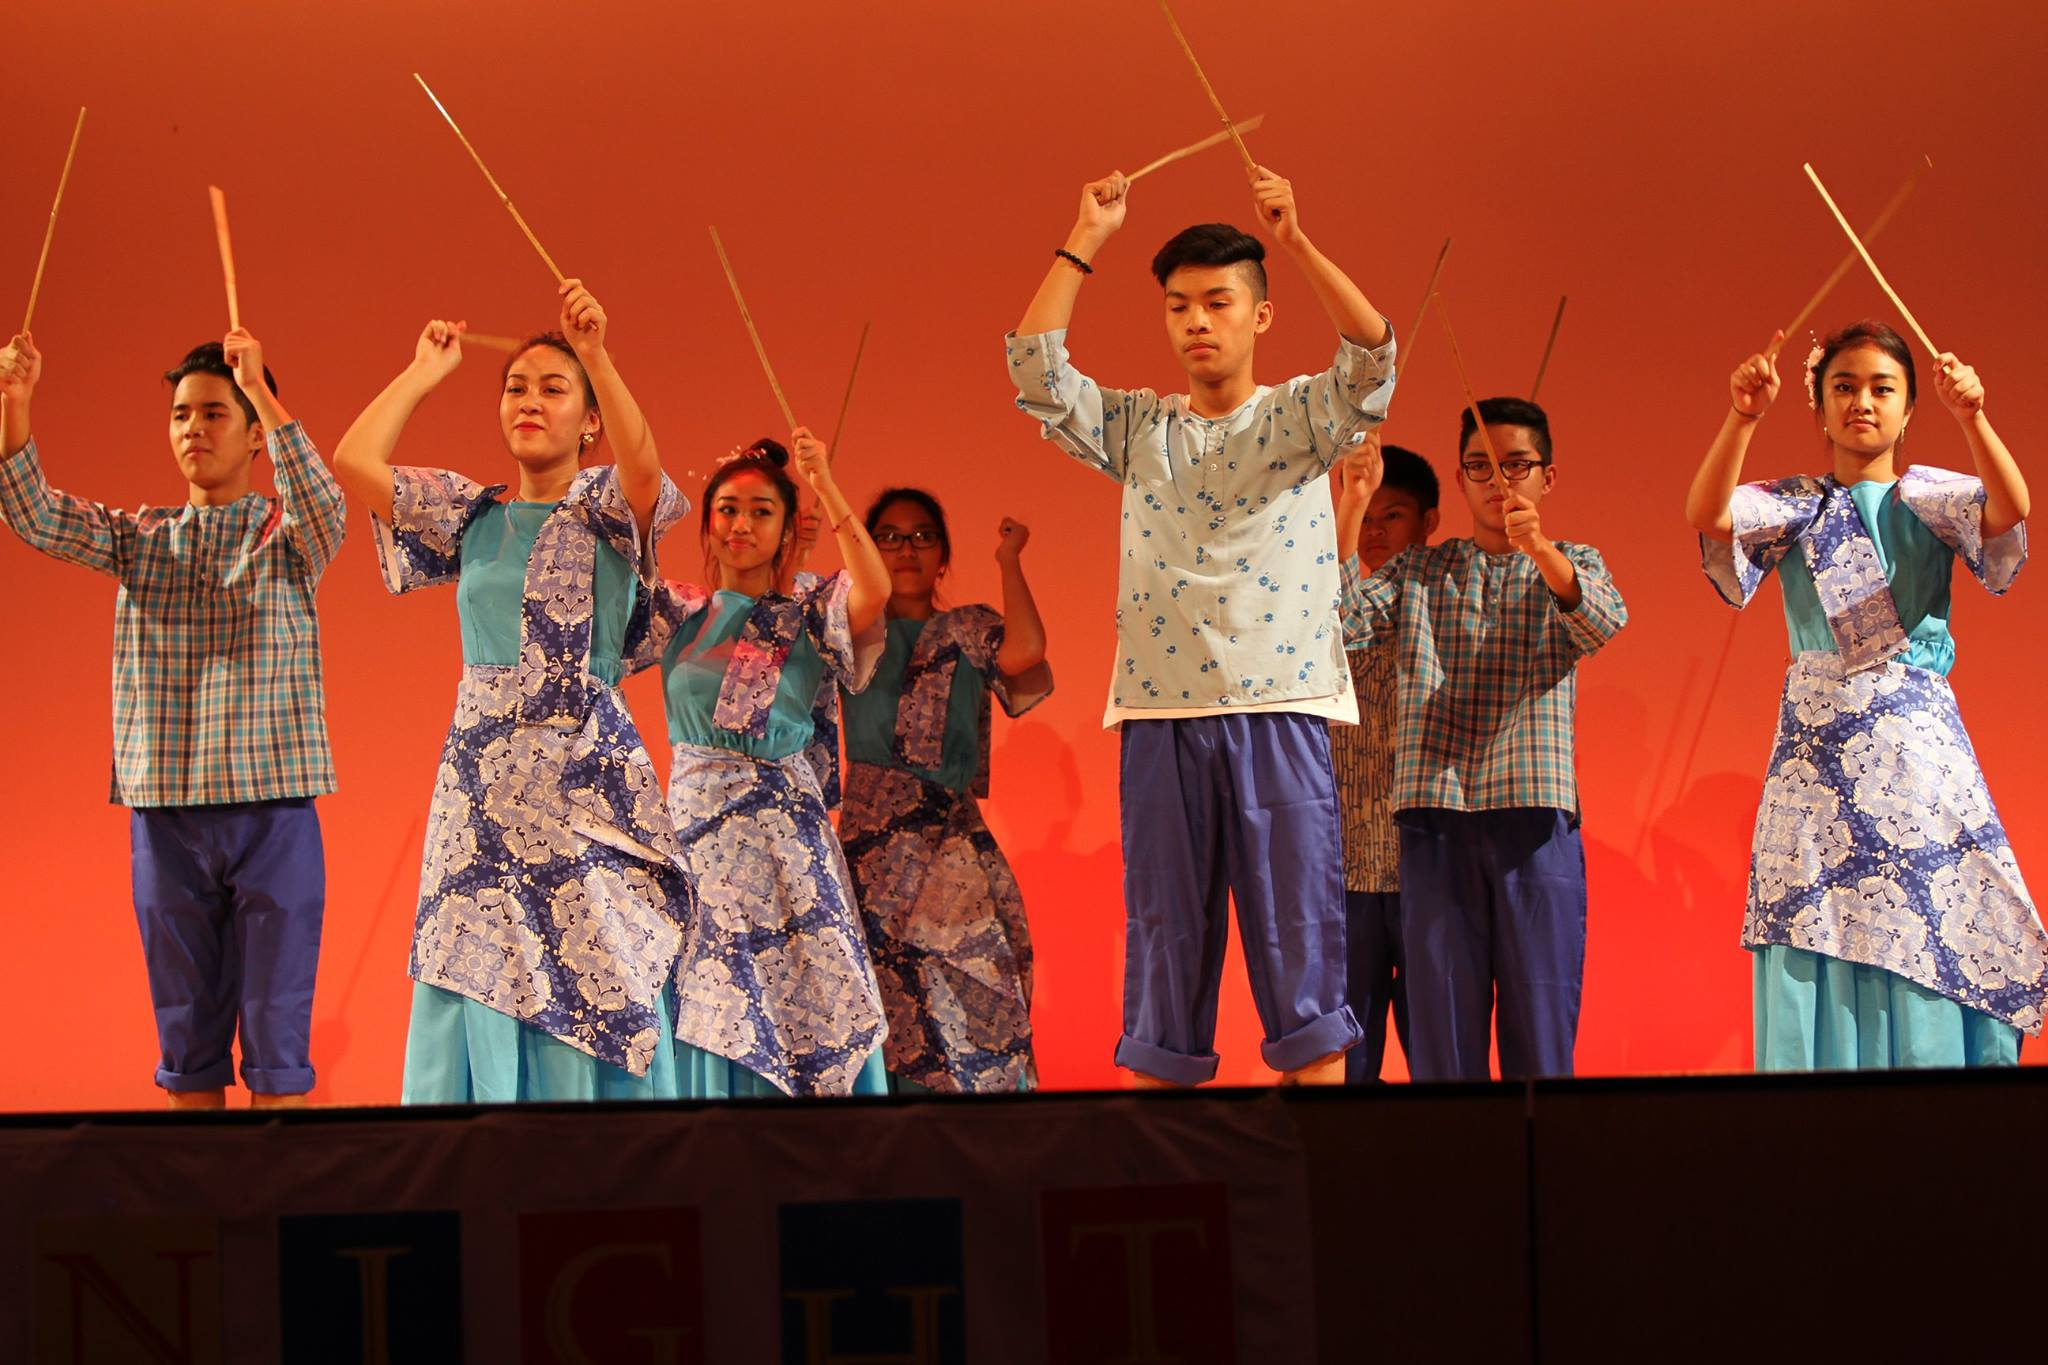 the Filipiniana Dance Group provided guests with cultural dance numbers and fashion show